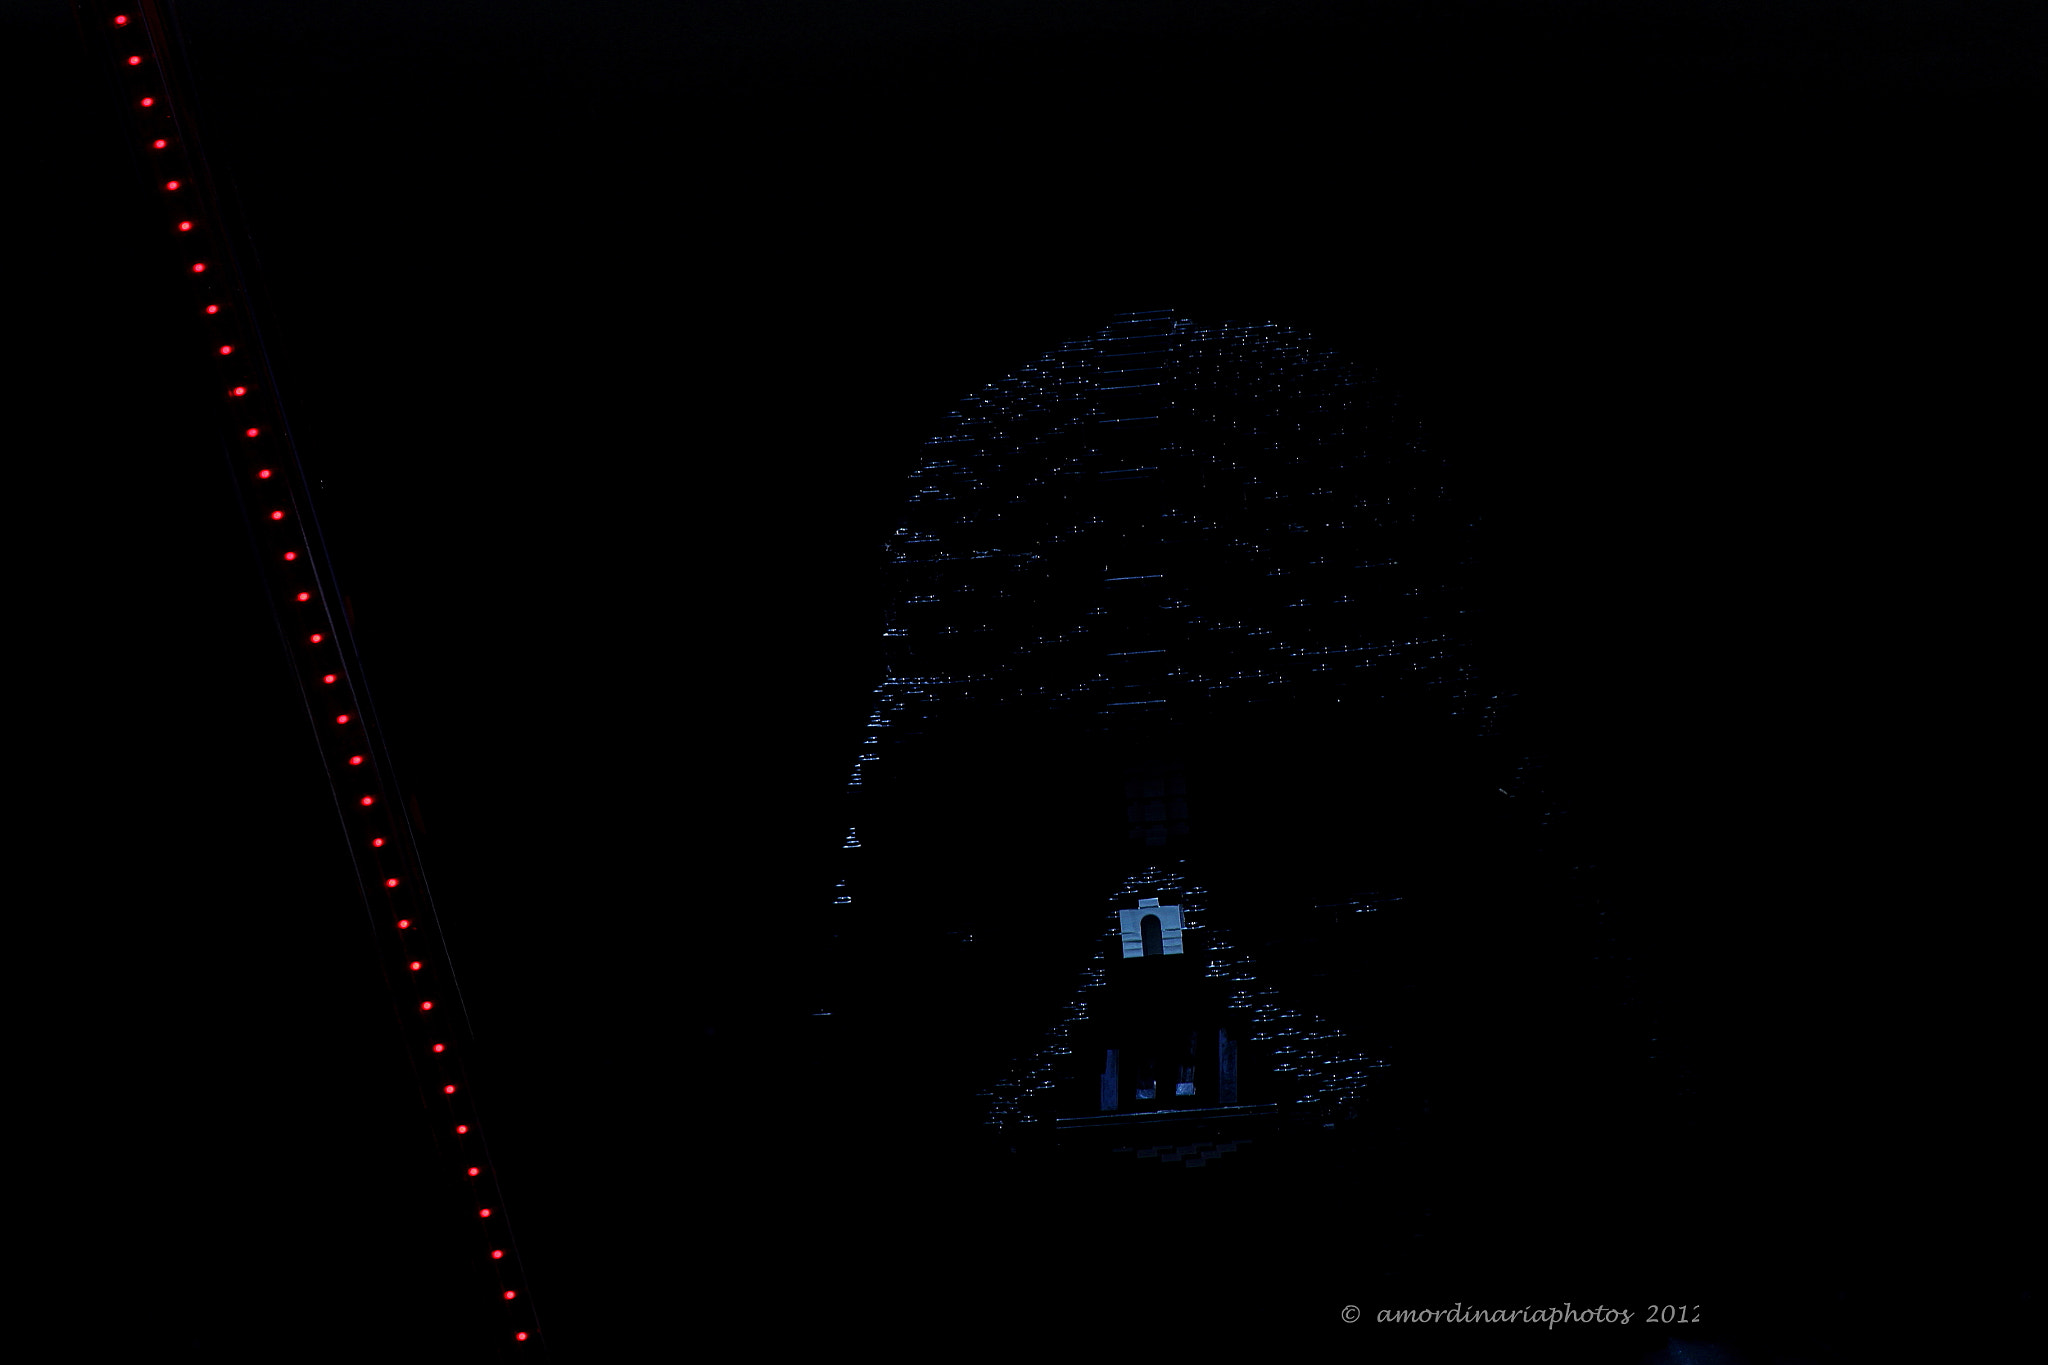 Photograph Darth In The Dark by Anthony Ordinaria on 500px